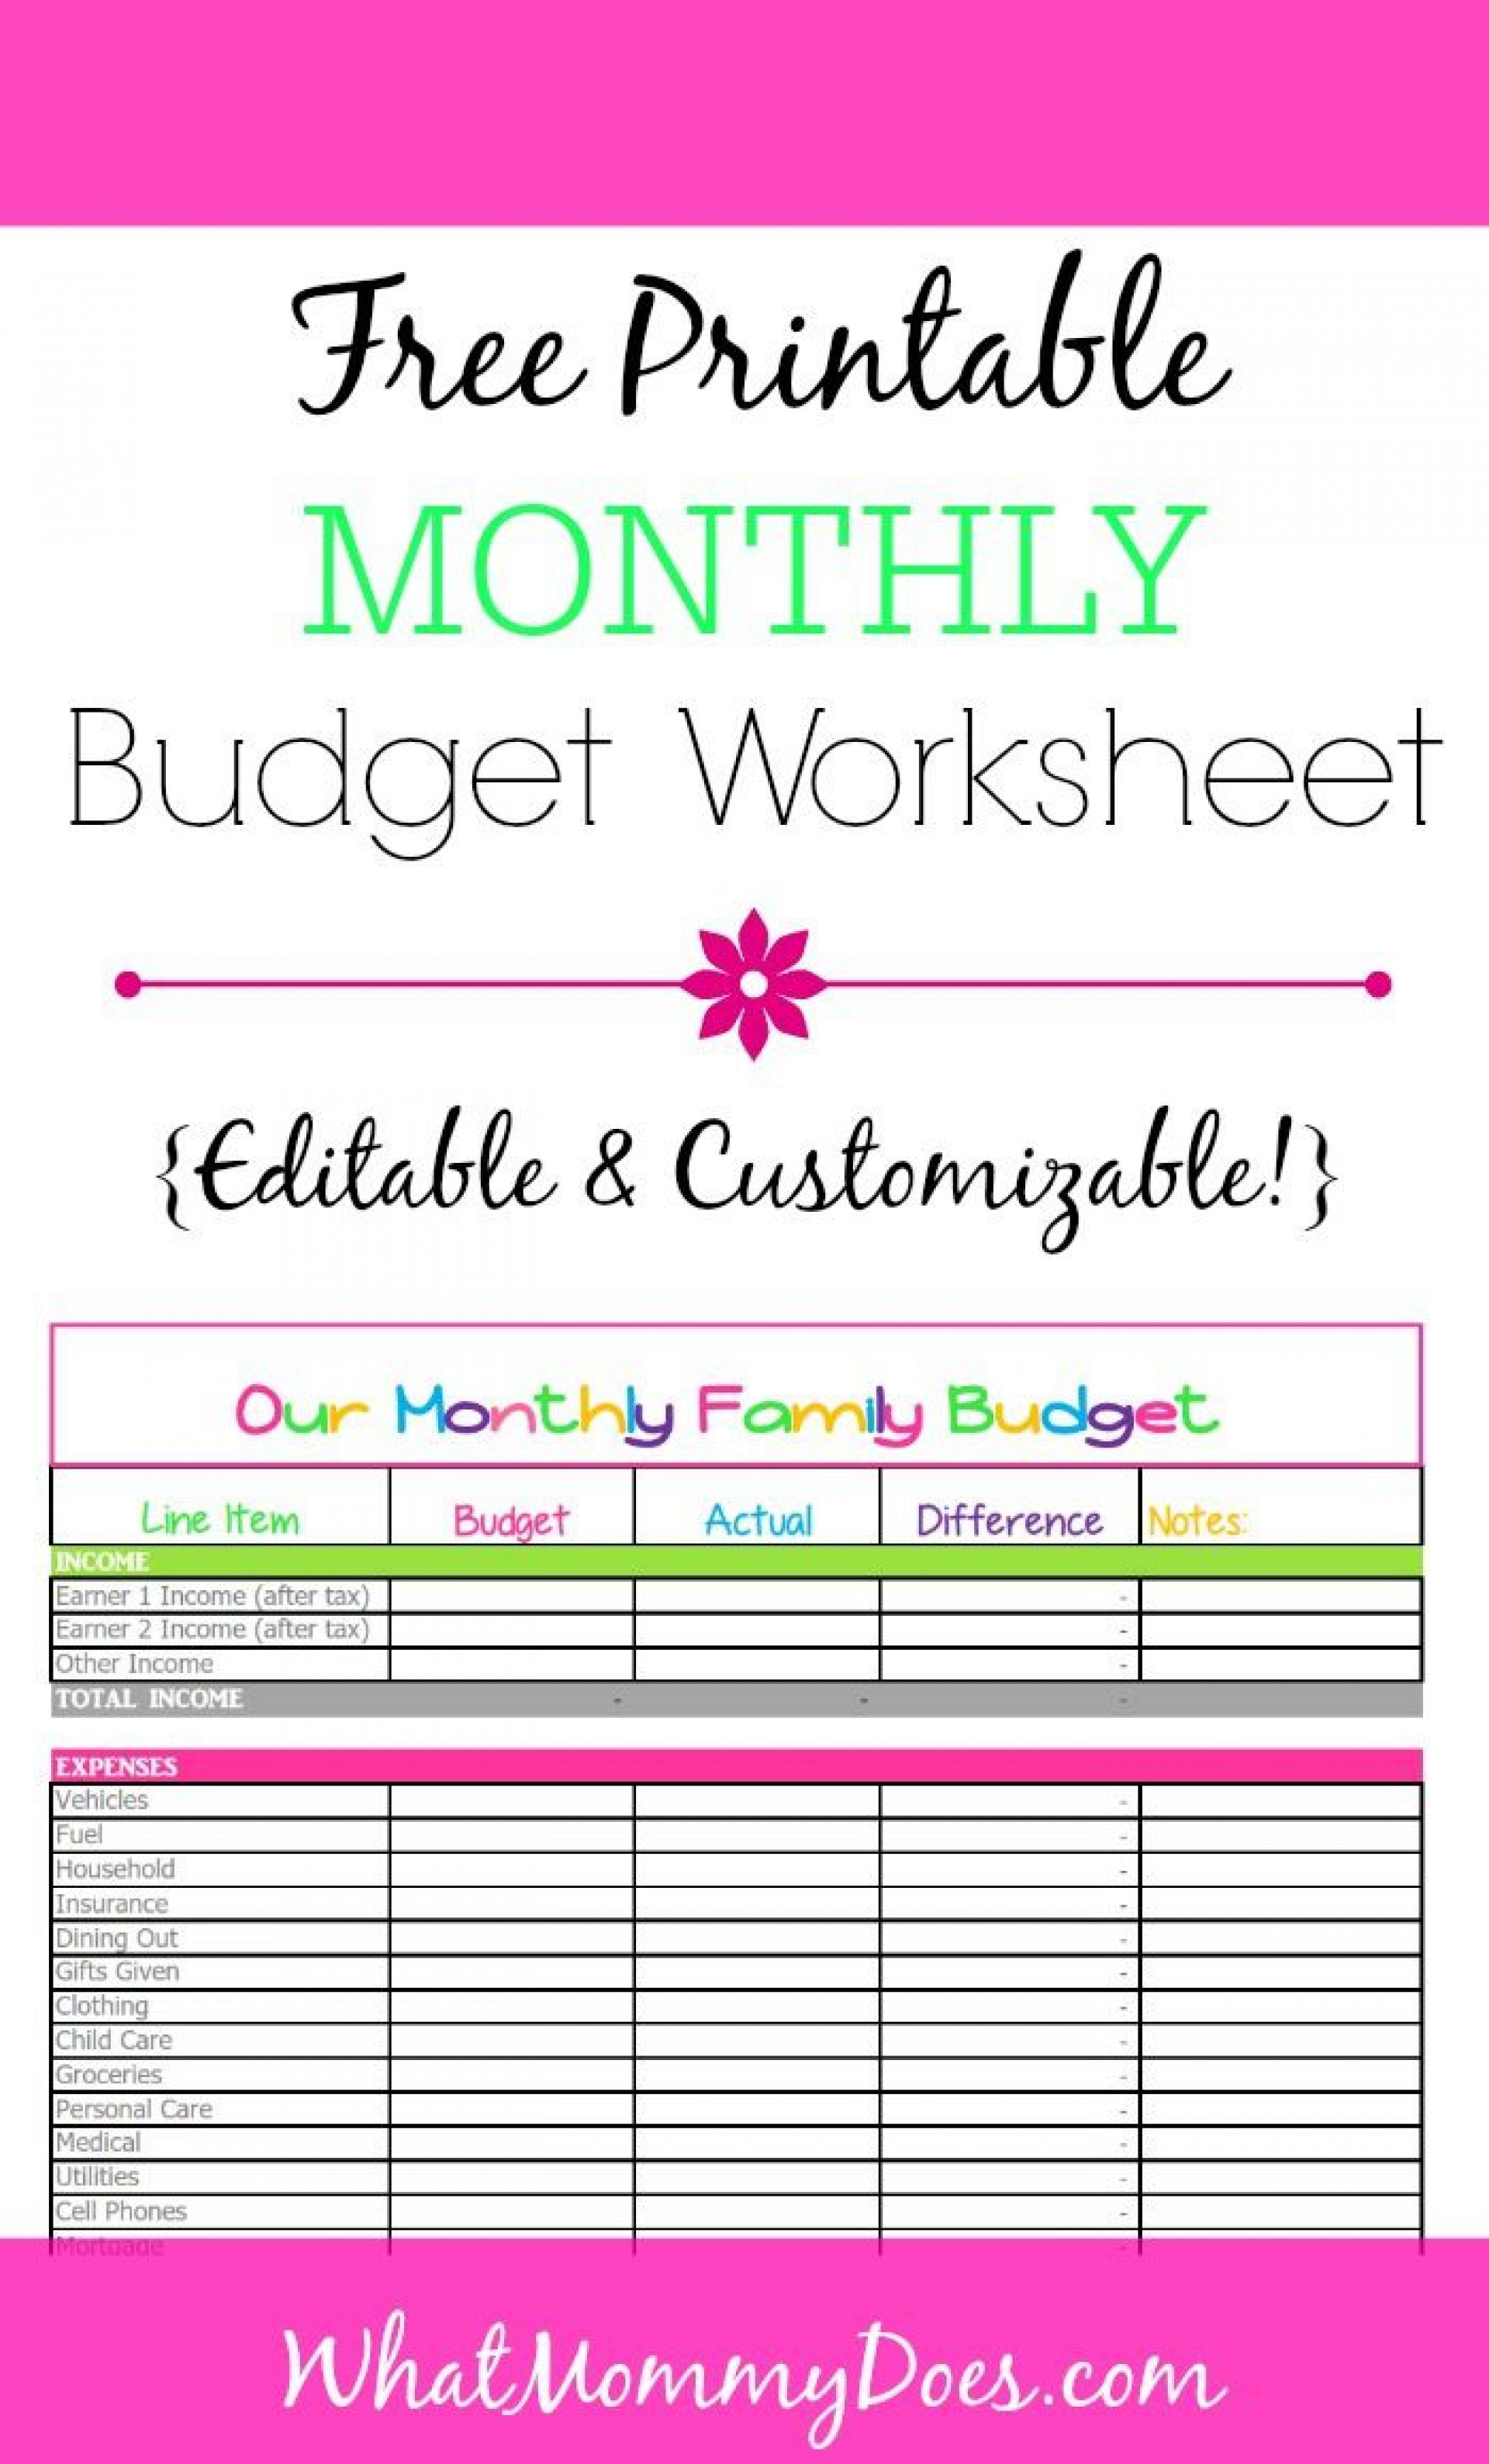 006 Remarkable Free Printable Blank Monthly Budget Sheet Image  Sheets Worksheet Template1920